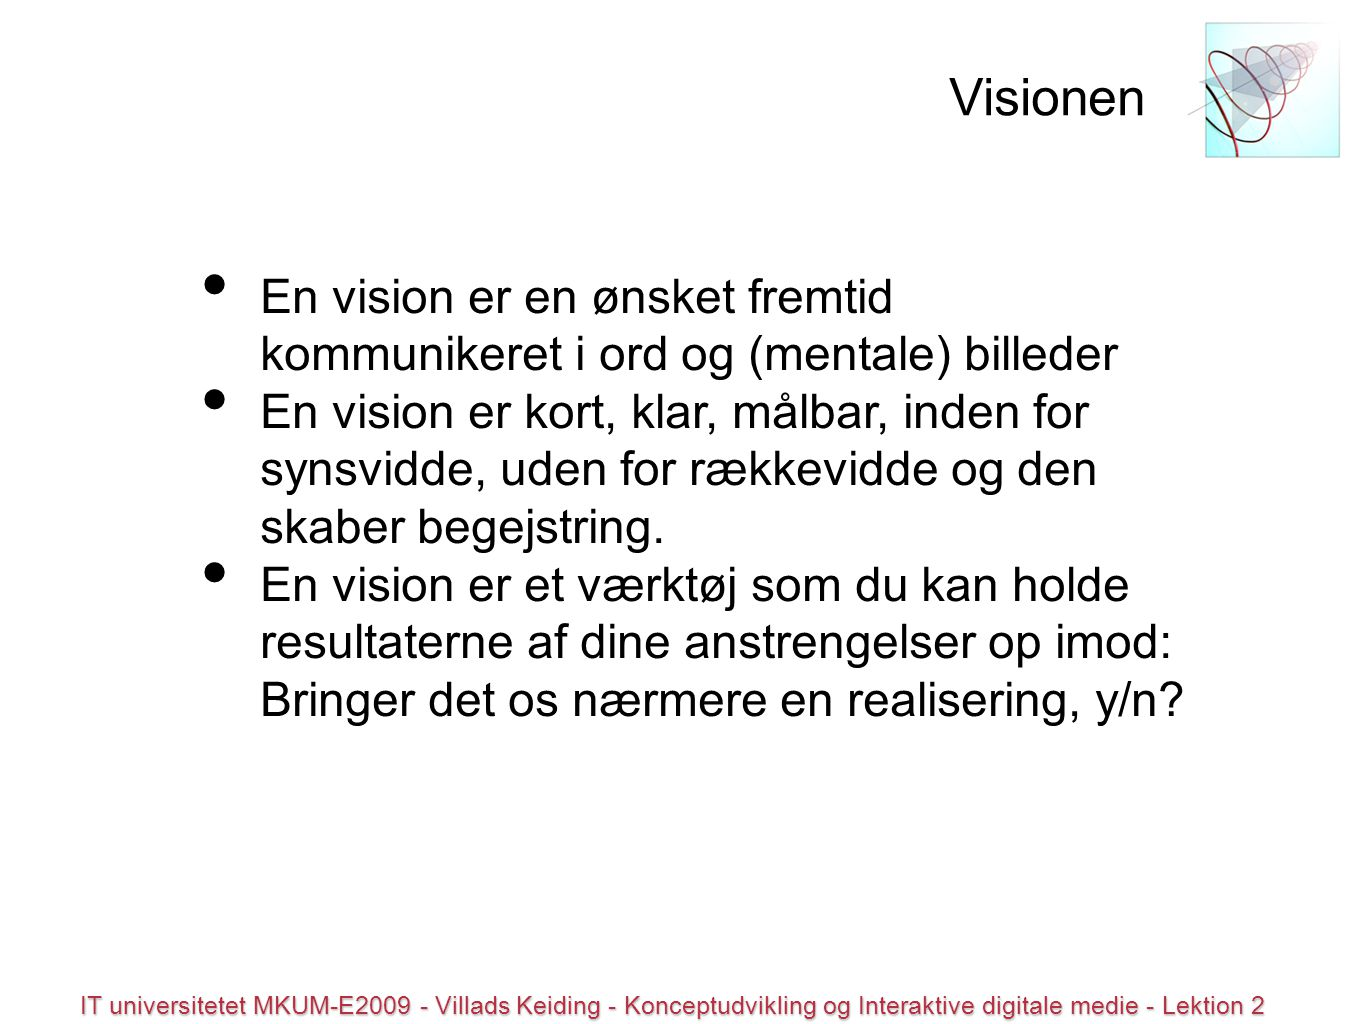 © all rights reserved IT universitetet MKUM-E2009 - Villads Keiding - Konceptudvikling og Interaktive digitale medie - Lektion 2 En vision er en ønsket fremtid kommunikeret i ord og (mentale) billeder En vision er kort, klar, målbar, inden for synsvidde, uden for rækkevidde og den skaber begejstring.